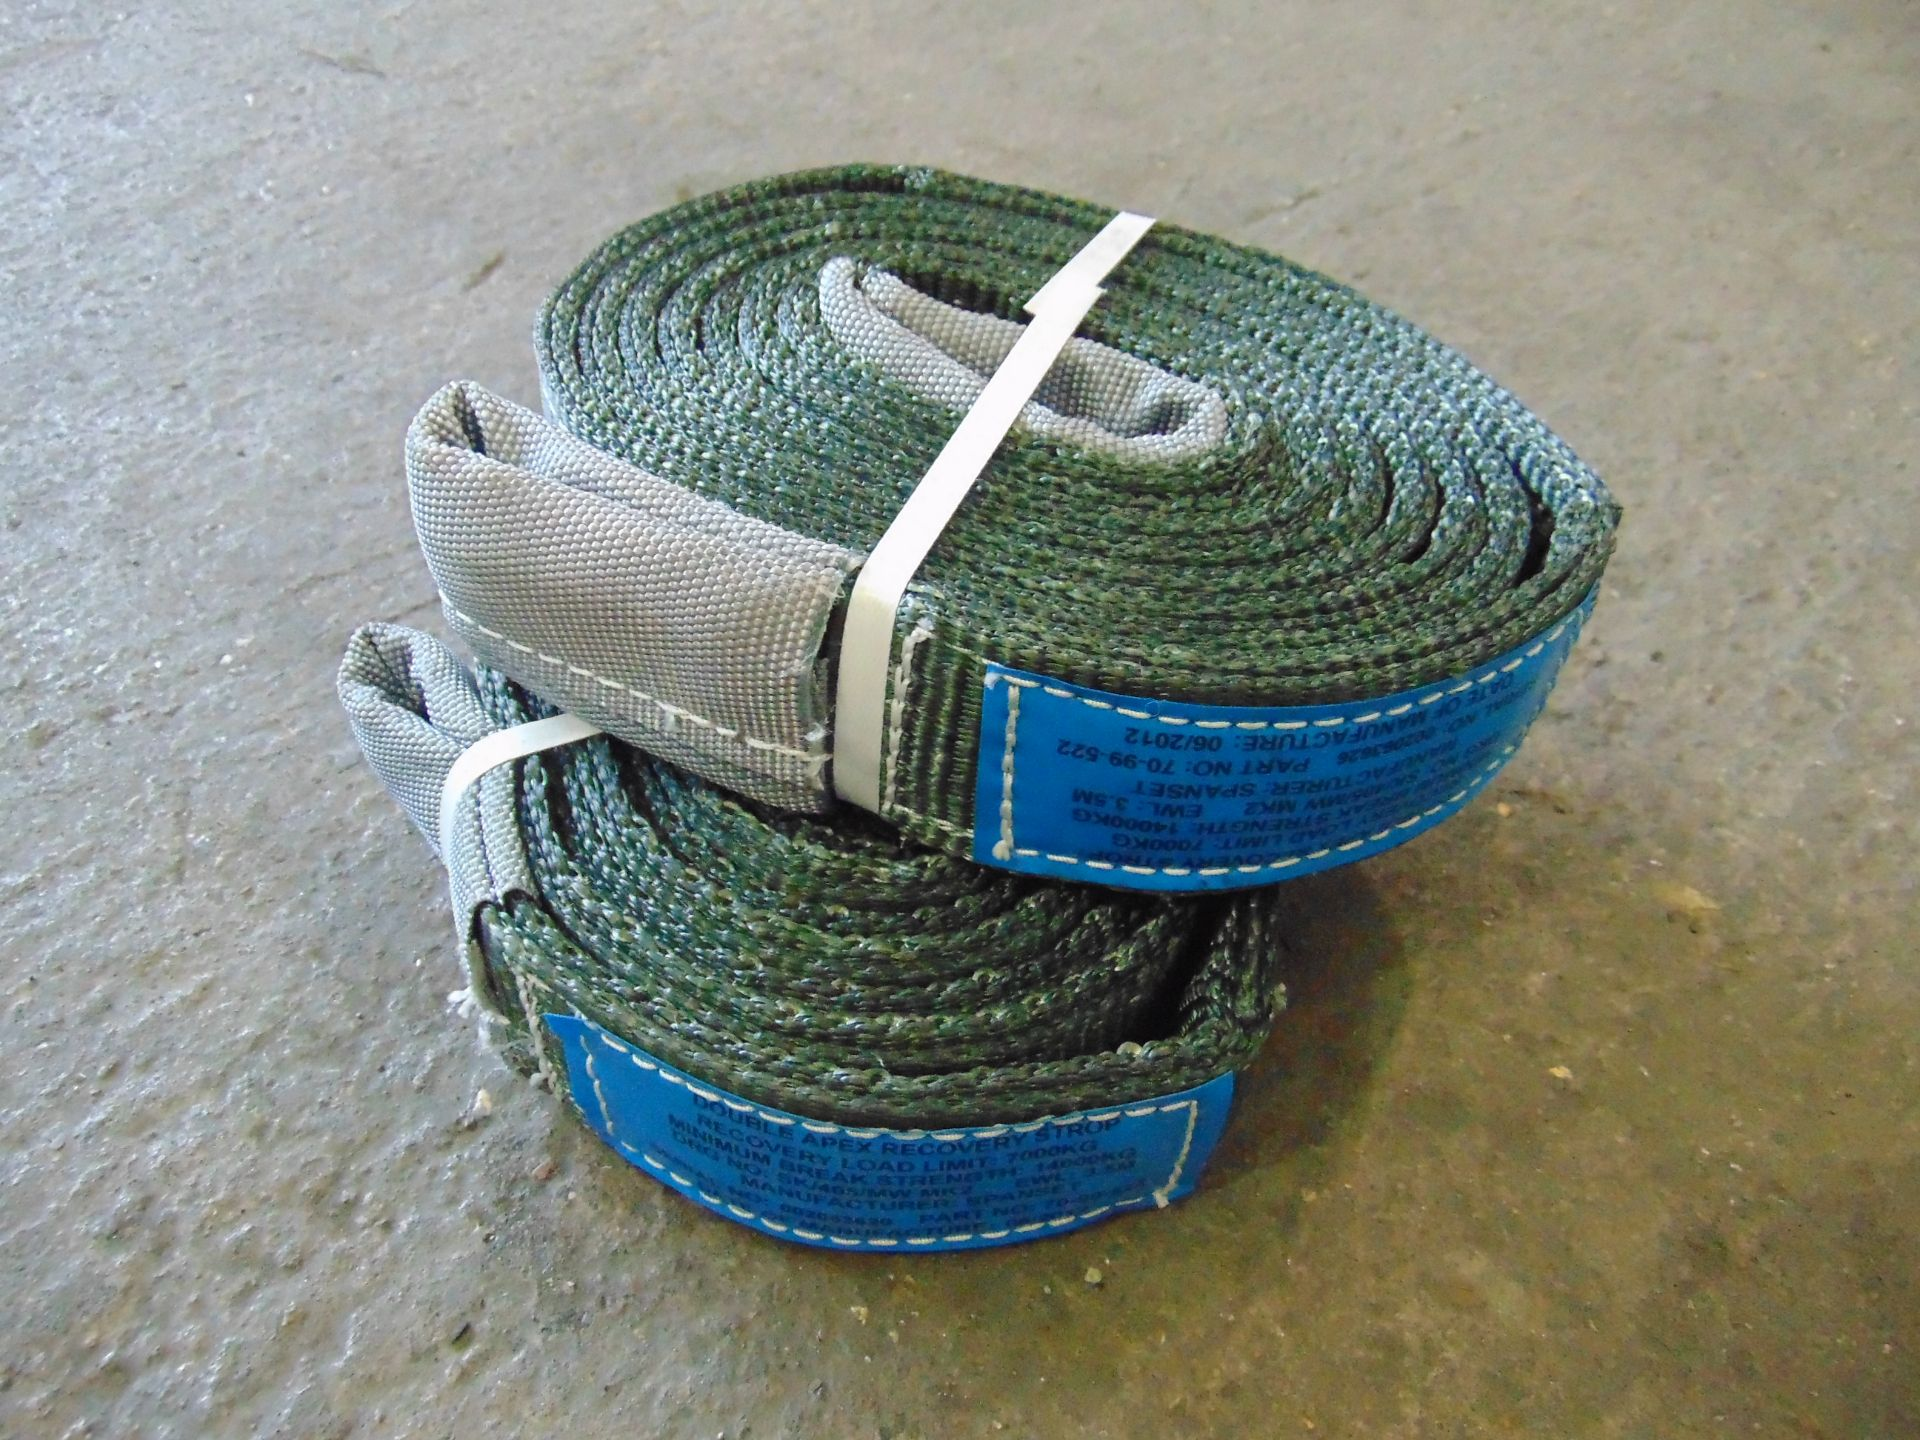 2 x SpanSet 7000Kg 3.5m Recovery Strops new unused